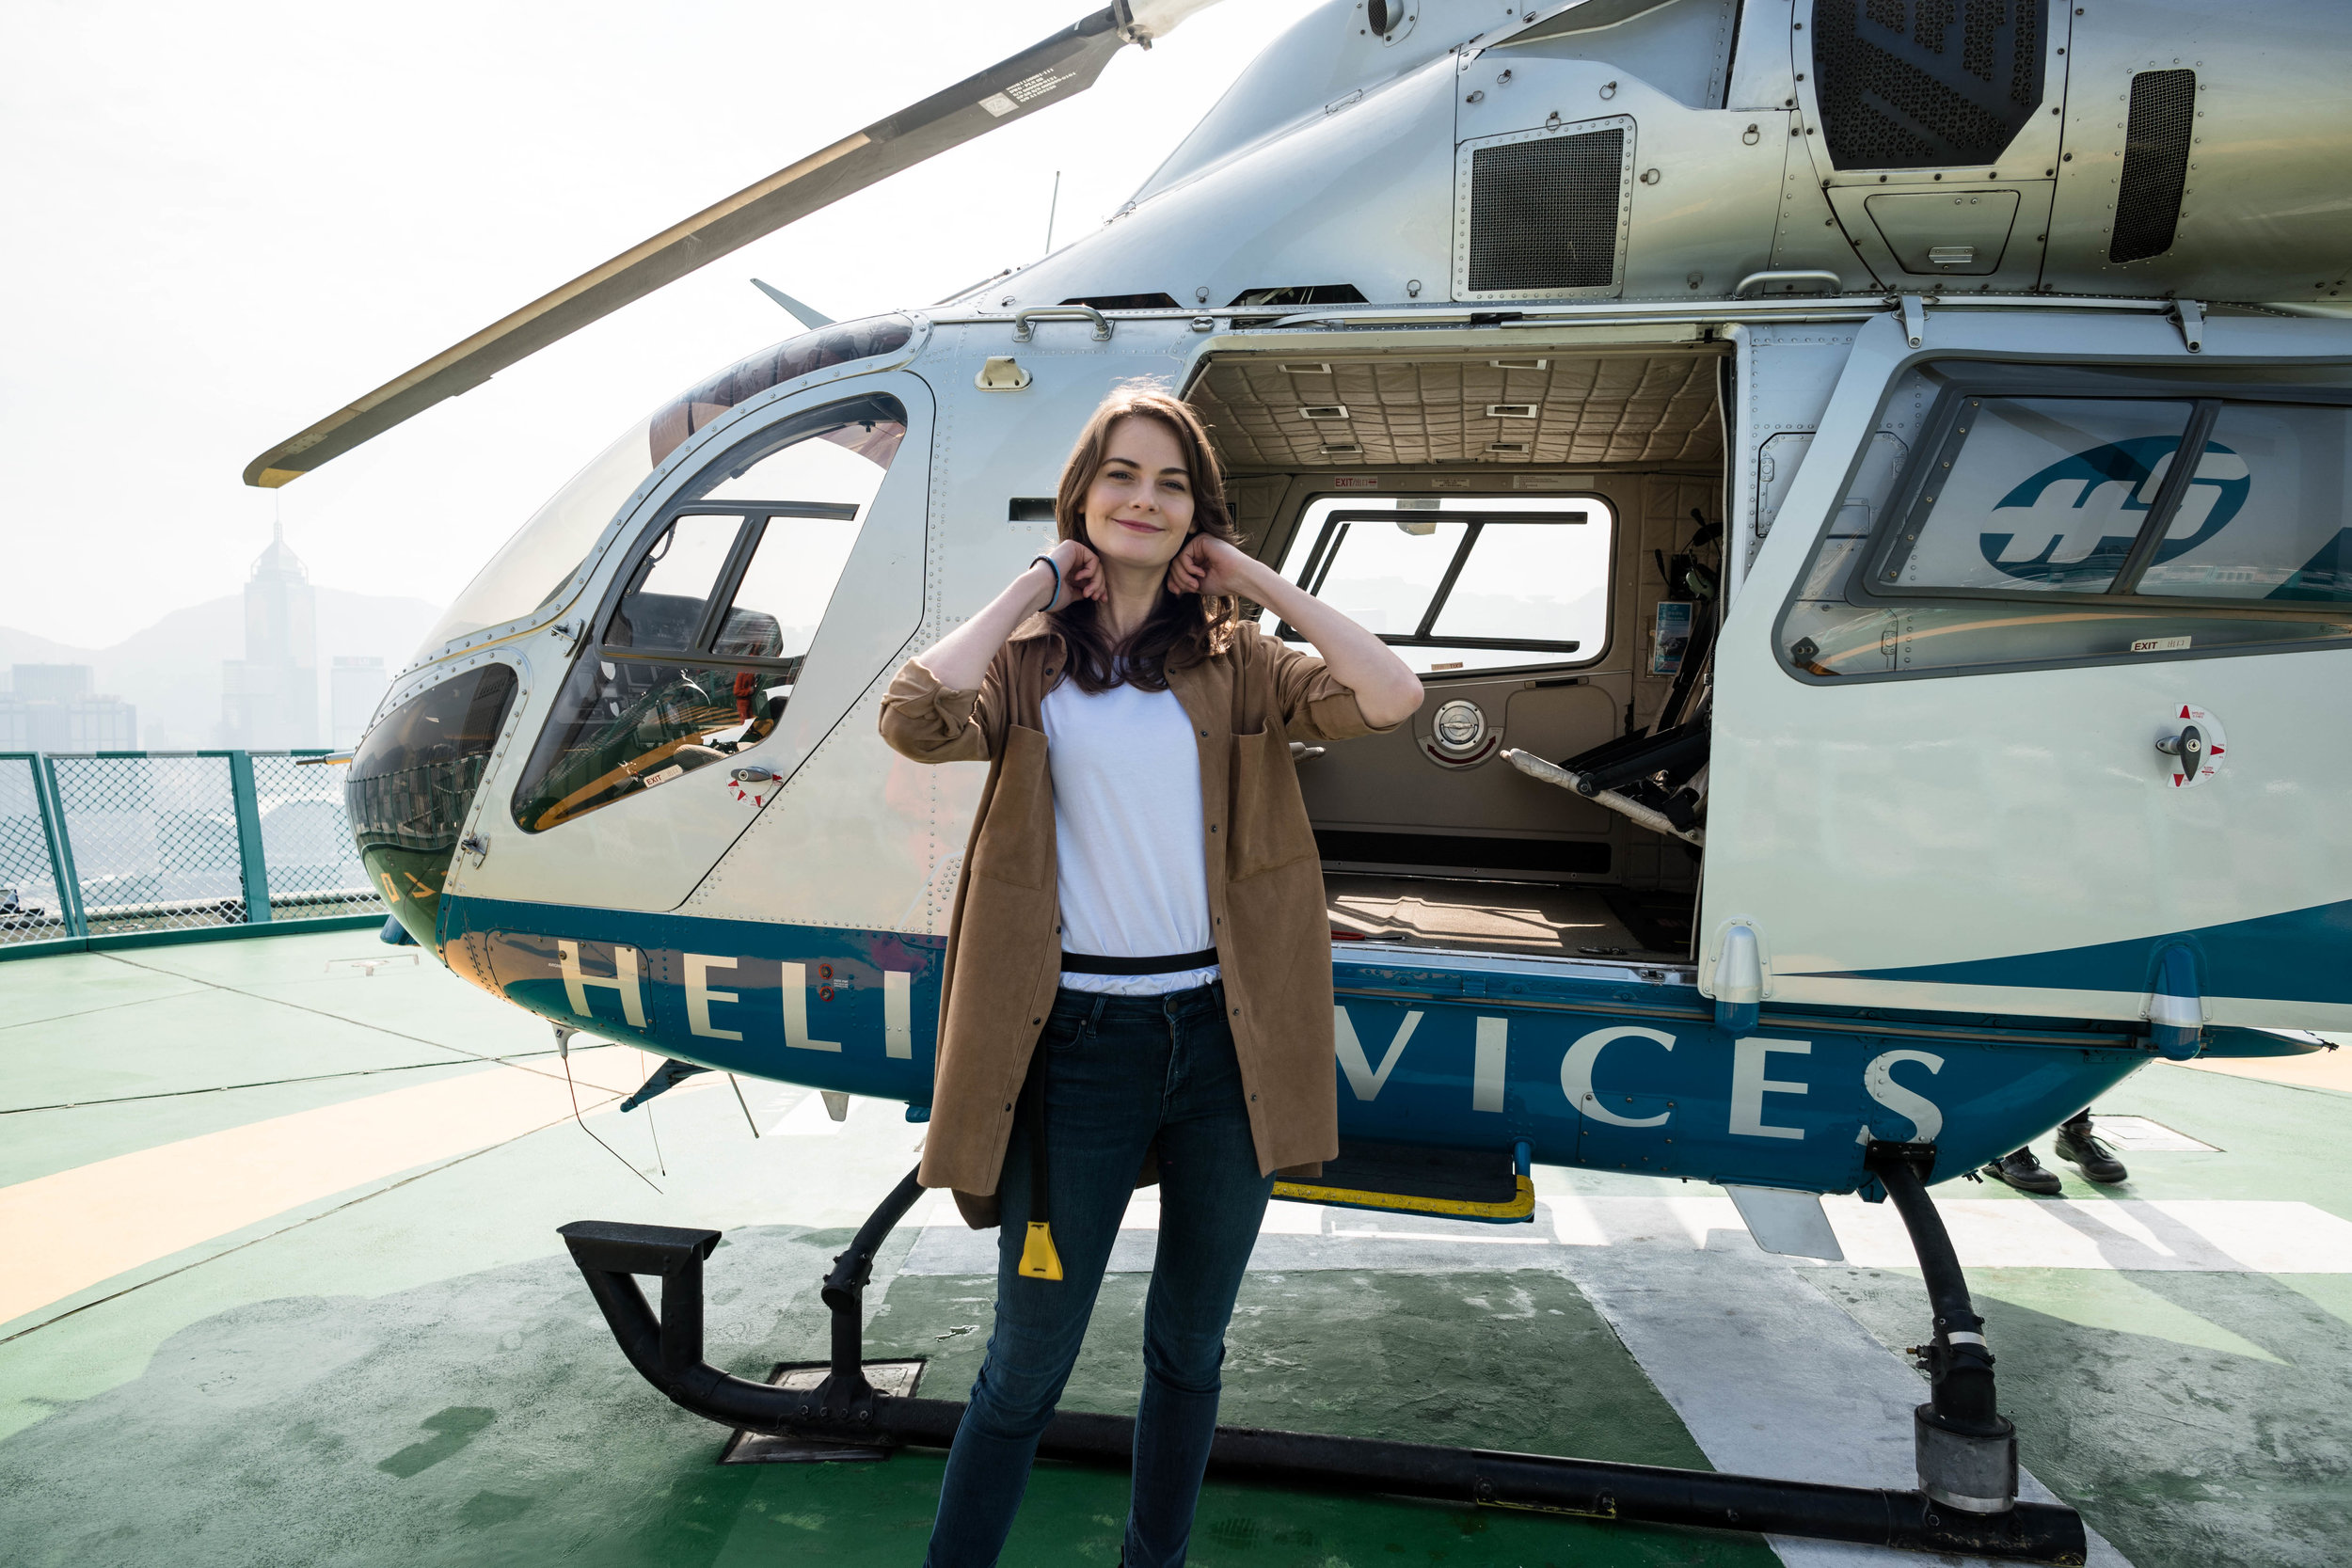 Boarding the helicopter. Anna already has the life preserver strapped around her waist. It is an aviation regulation requirements.